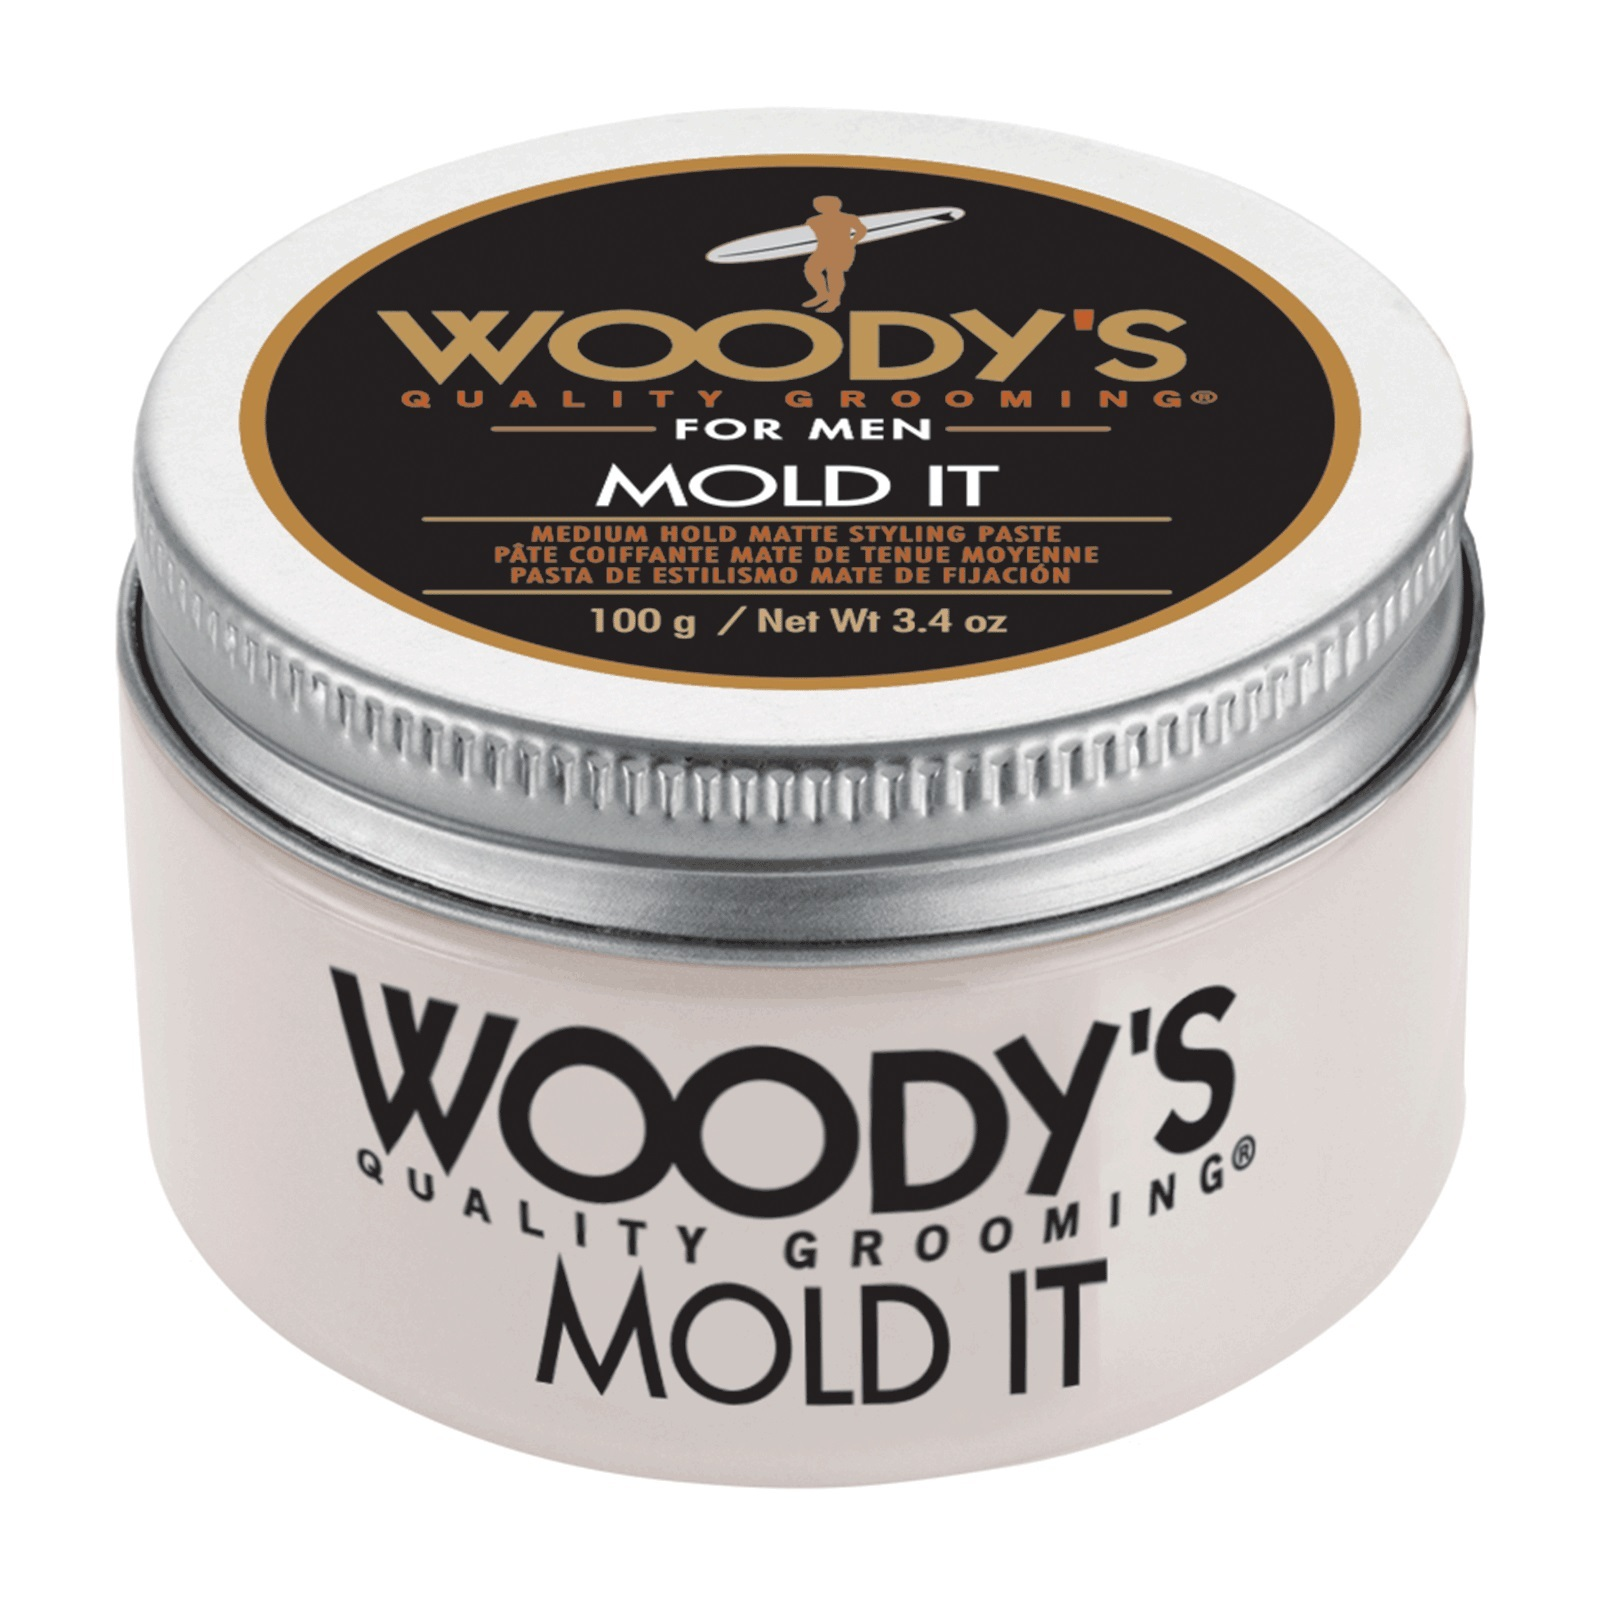 Woody's Mold It Matte Styling Paste 3.4oz image 3